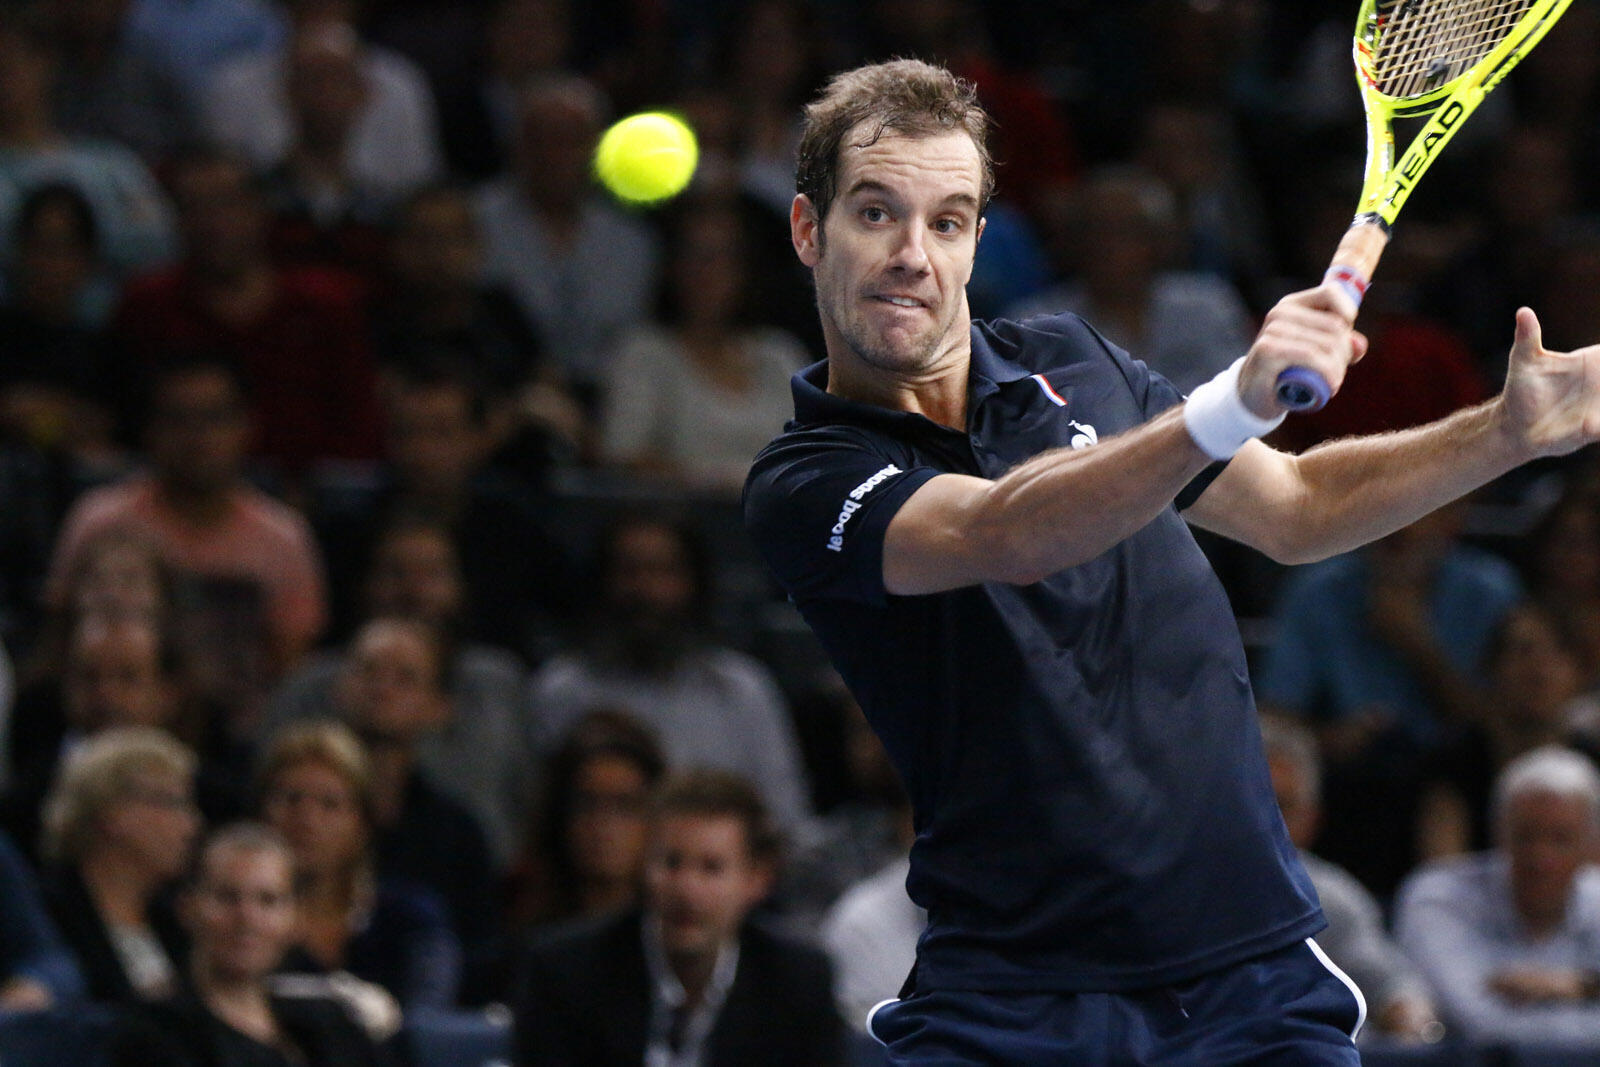 Richard Gasquet has never been past the last 16 in 14 visits to the Australian Open since 2003.